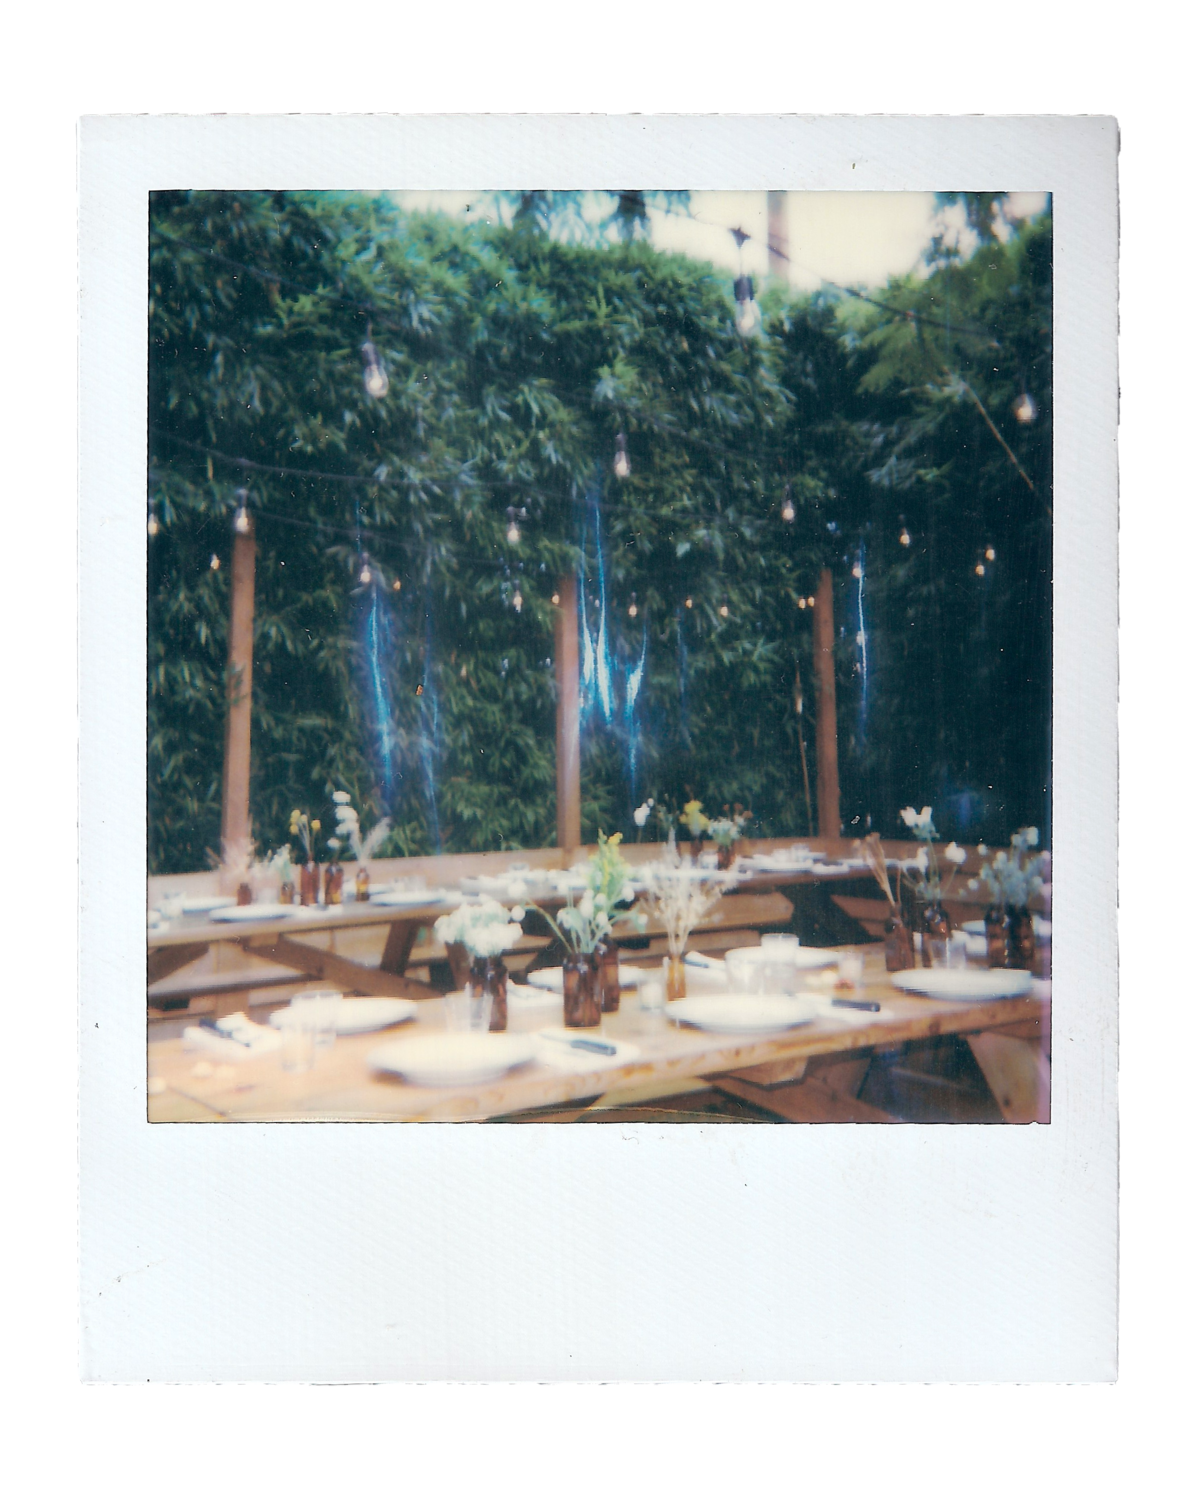 Nick + Kelly | Portland, OR Backyard Wedding | Polaroids00002